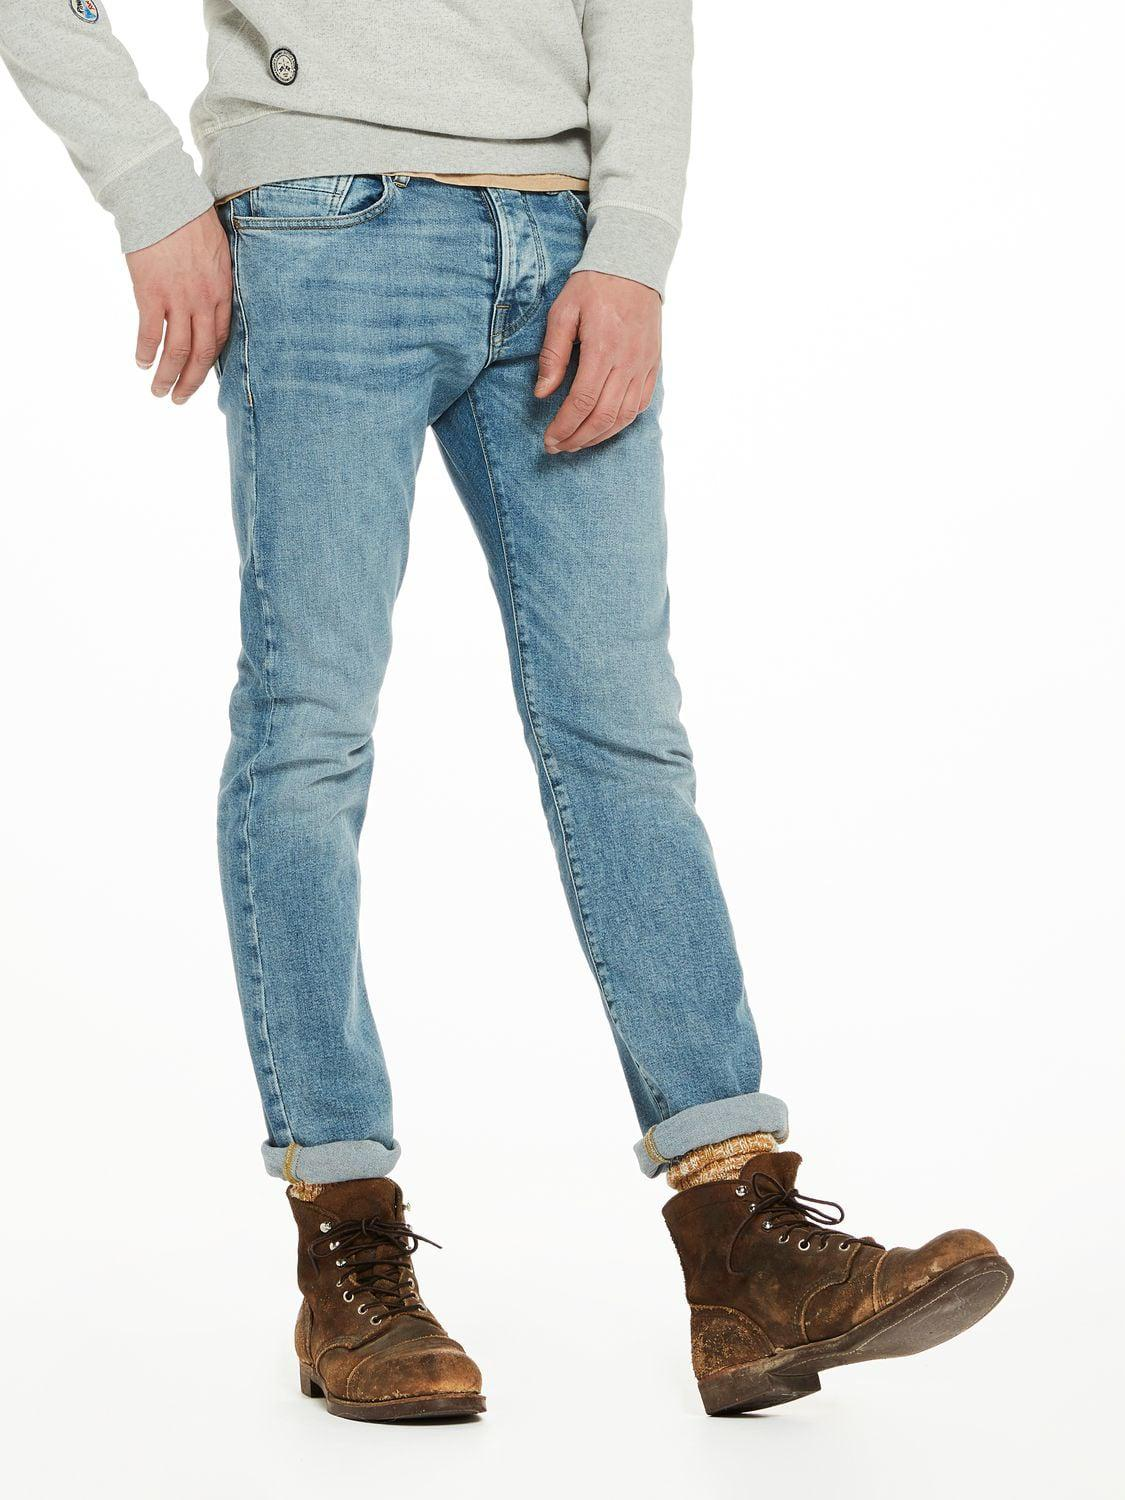 Blue Jeans Hommes Ralston-bronco Scotch & Soda z4g7QwA